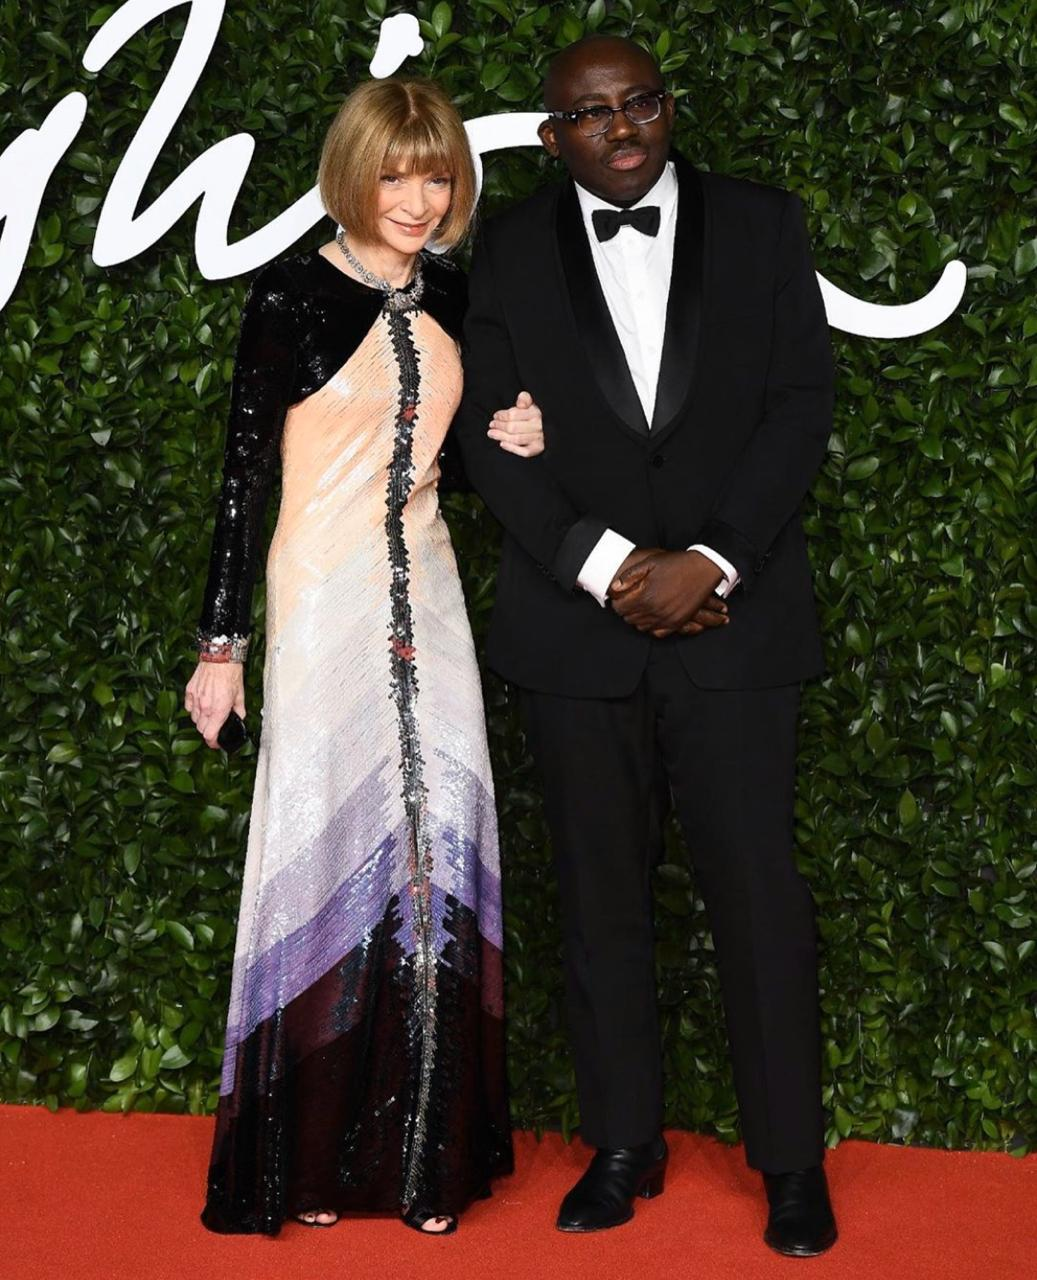 Anna Wintour no British Fashion Awards 2019, em Londres, segunda passada